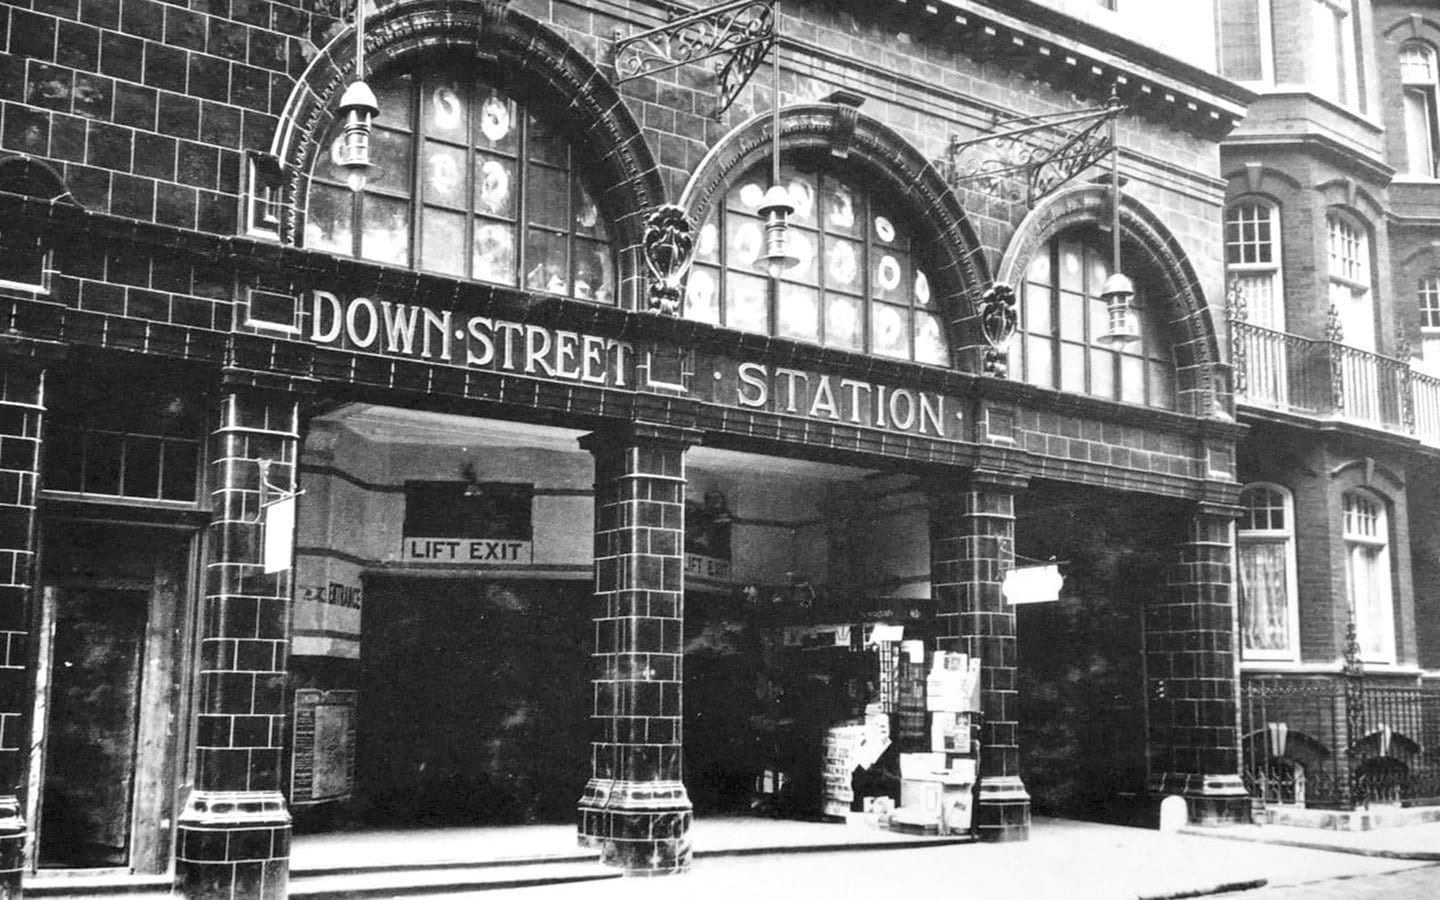 Down street tube station